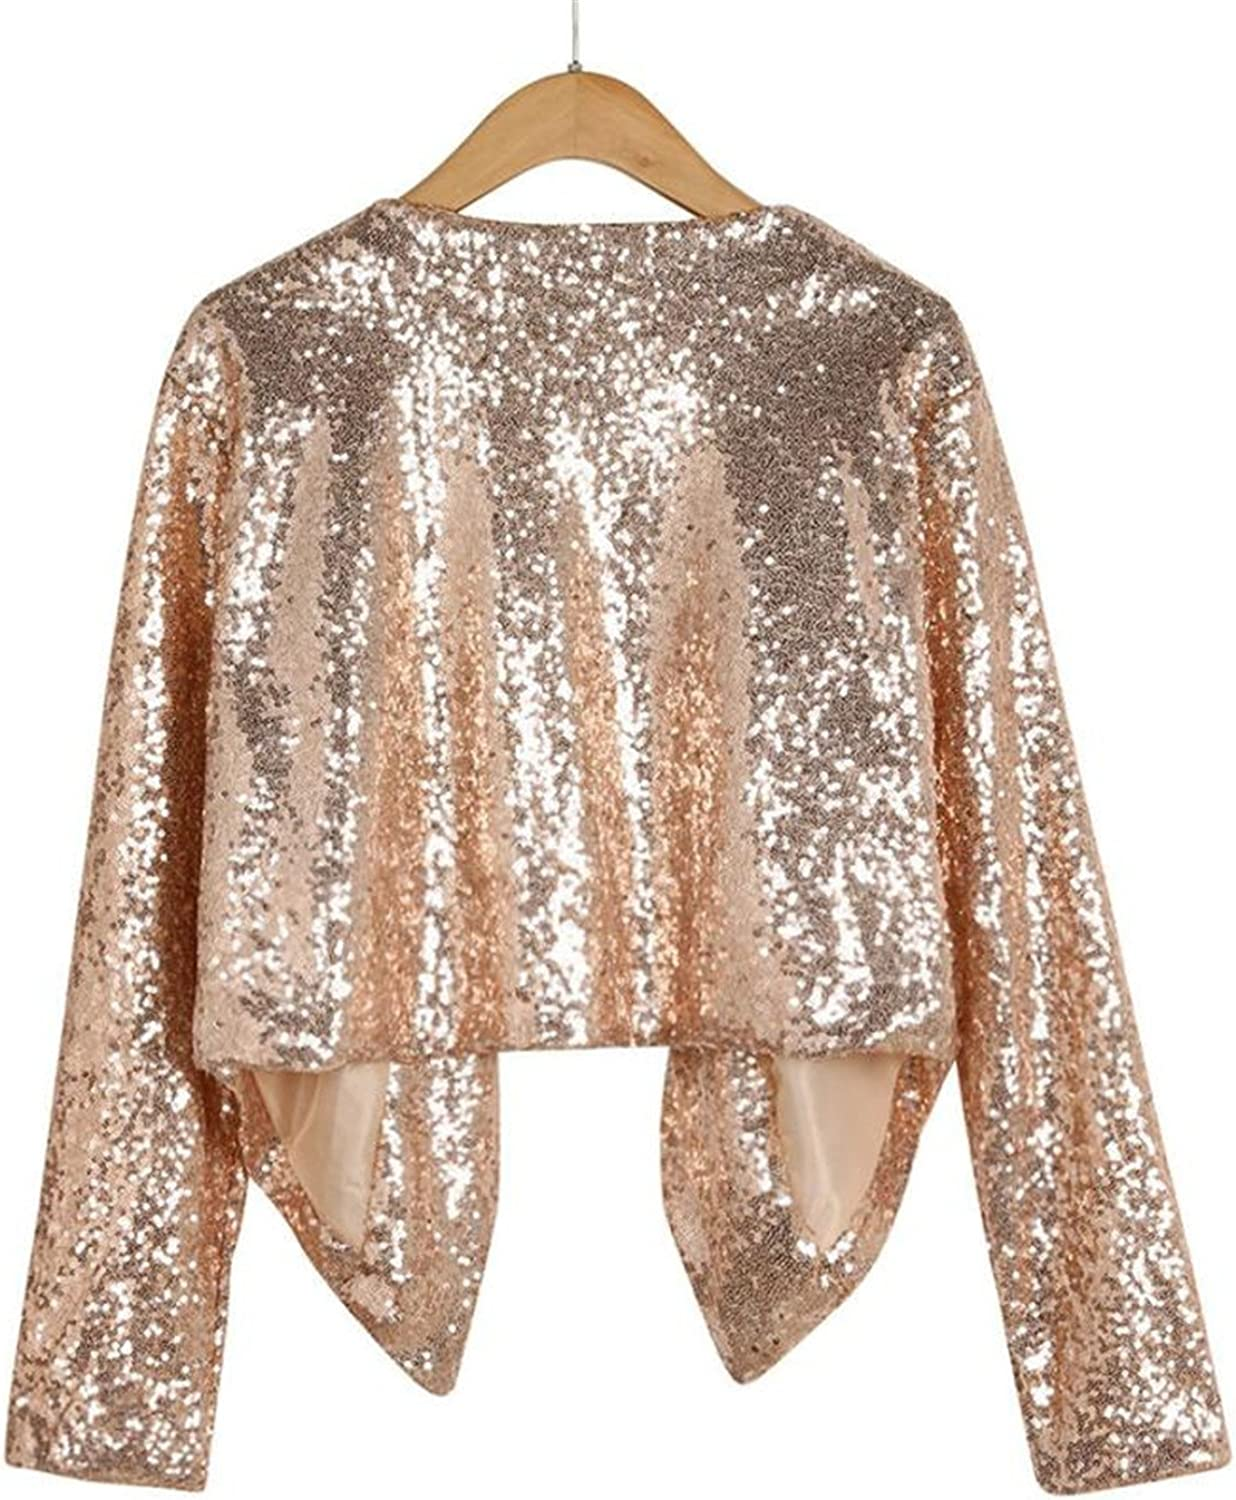 NENGWENWU Women Open Stitch Long Sleeve Solid Sequined Irregular Cardigan Tops Cover up Coat